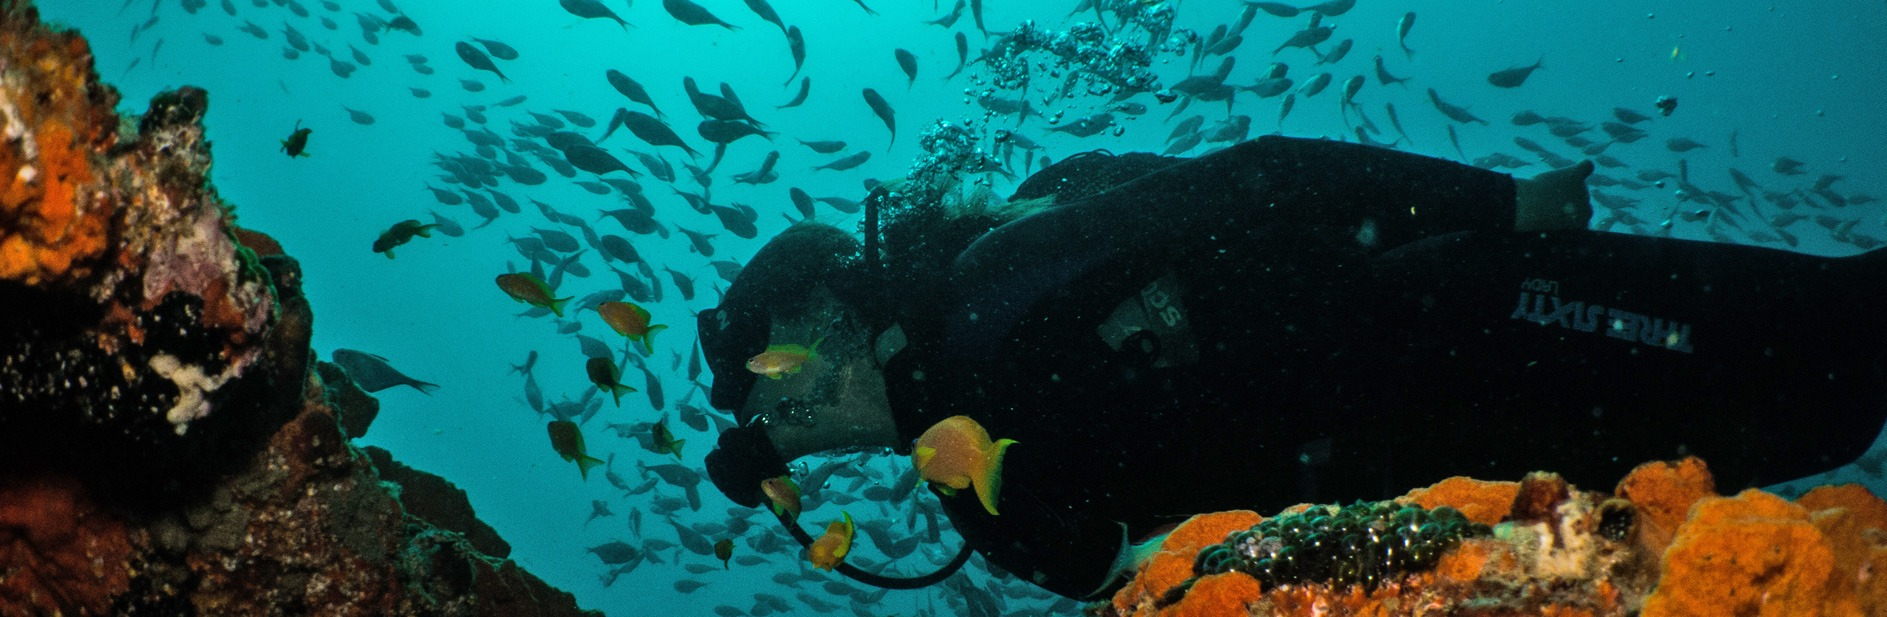 gozo-azul-mozambique-ponta-do-ouro-experience-the-thrill-of-the-ocean